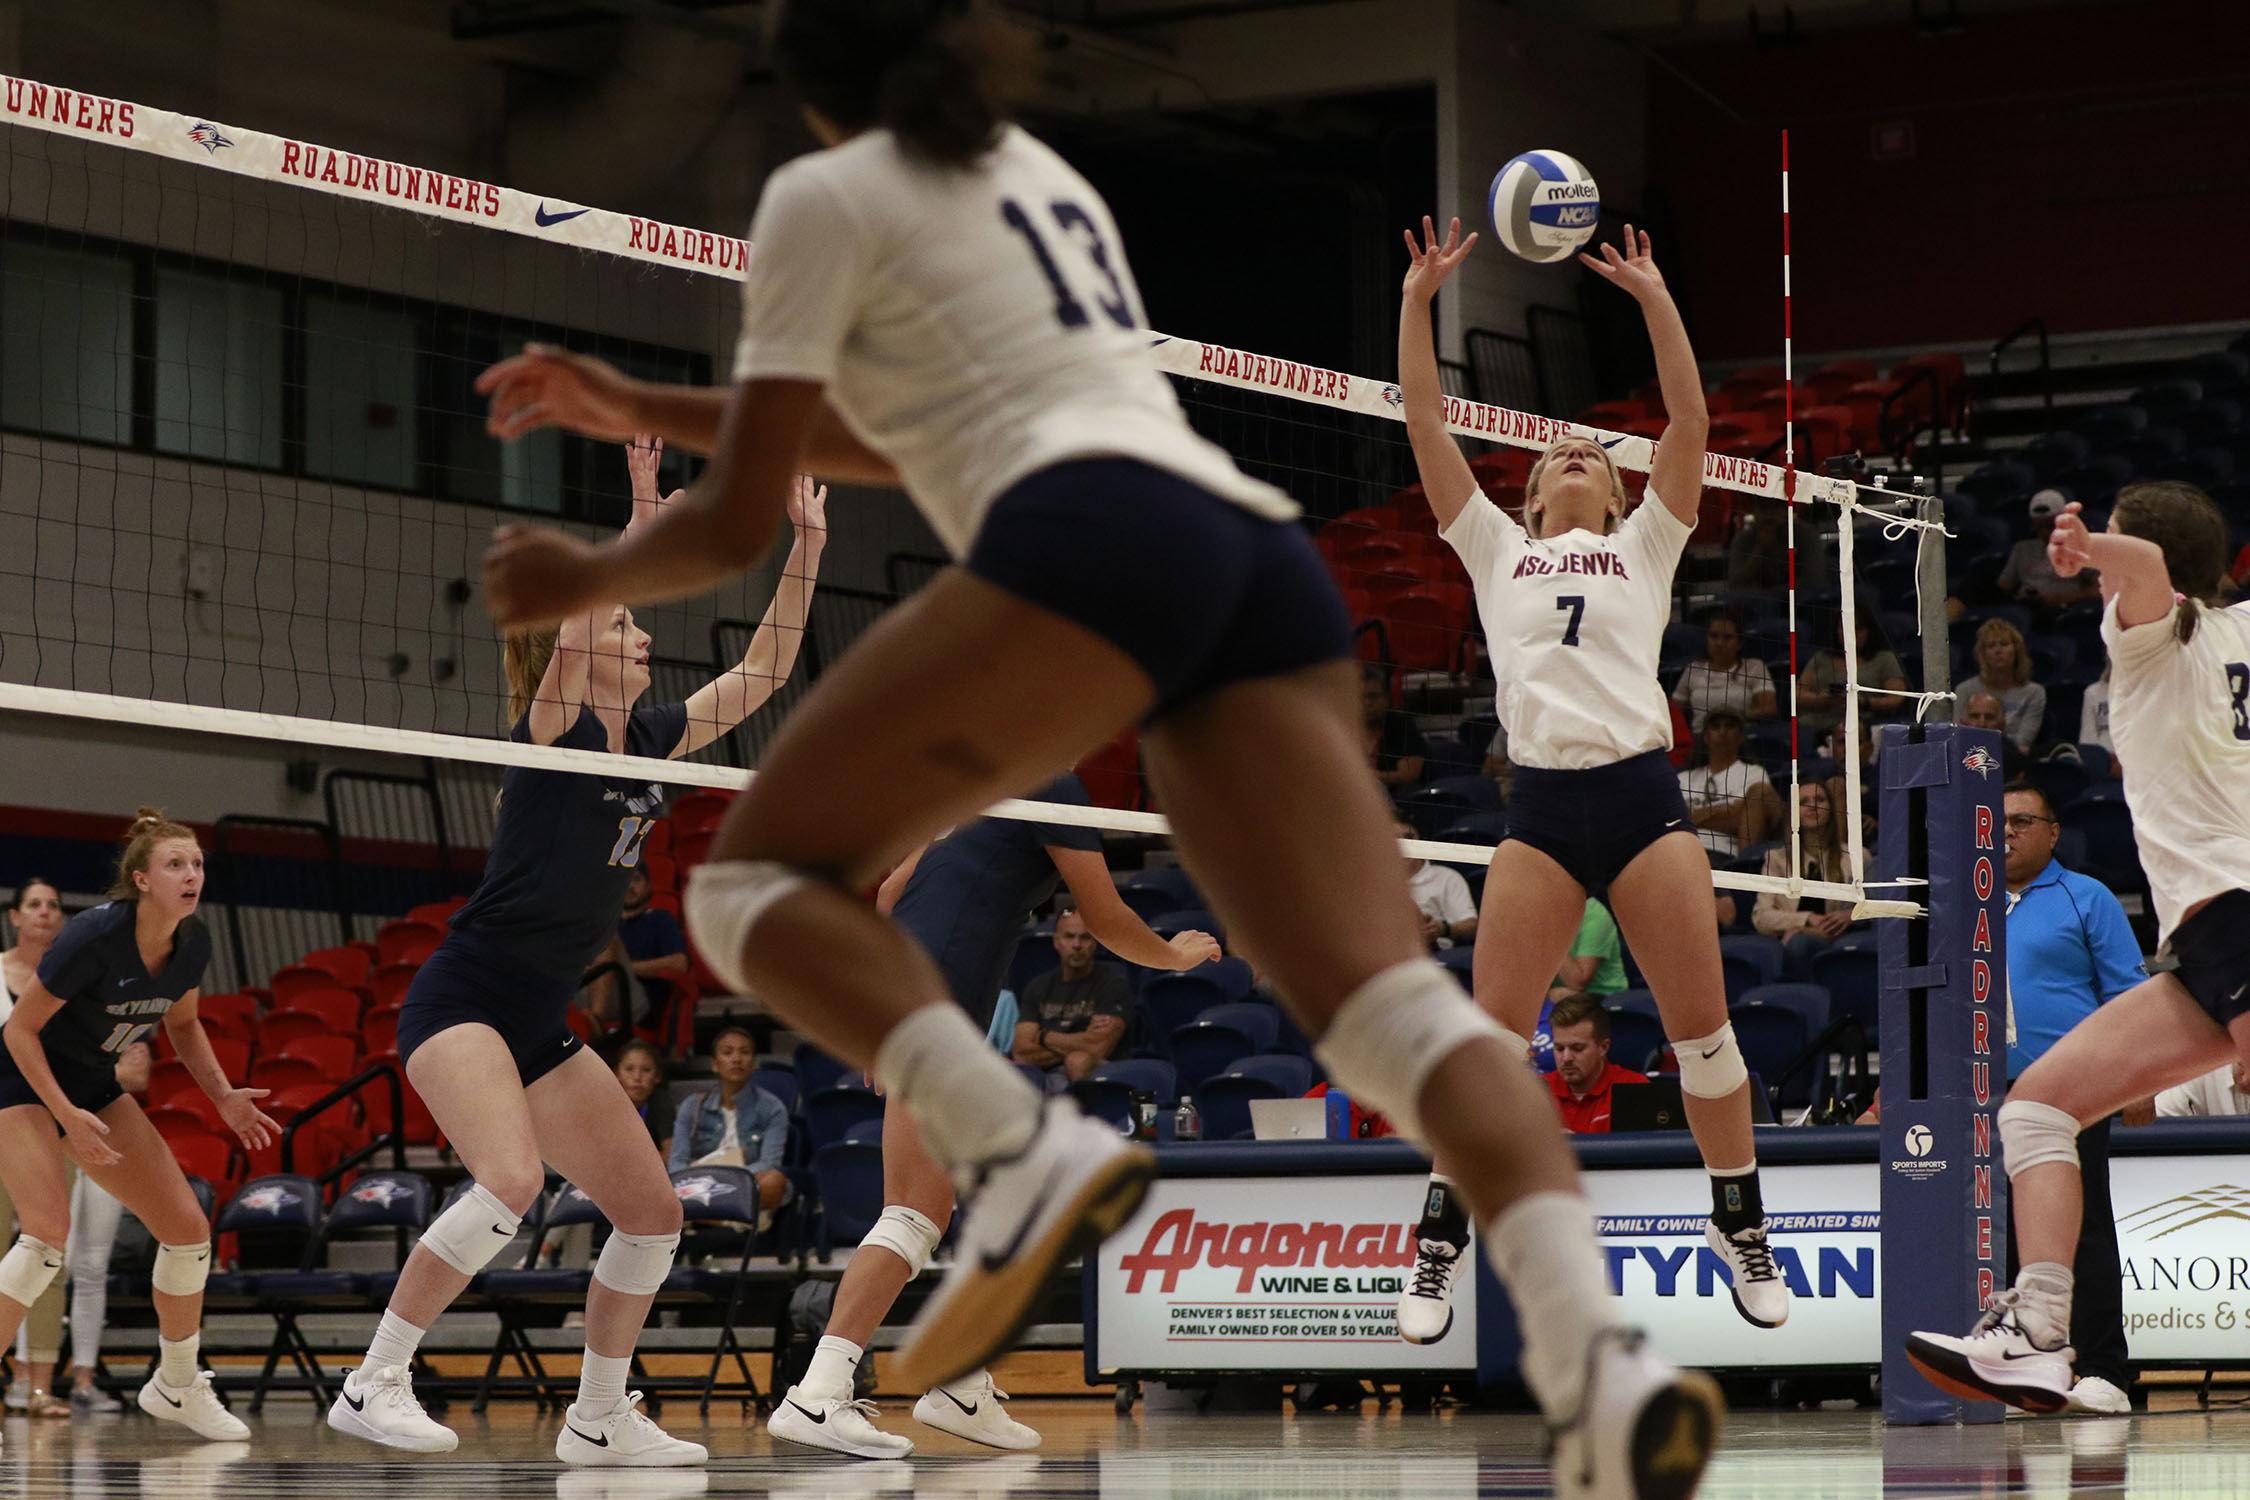 Msu Denver Volleyball Off To Perfect Start In Conference Play